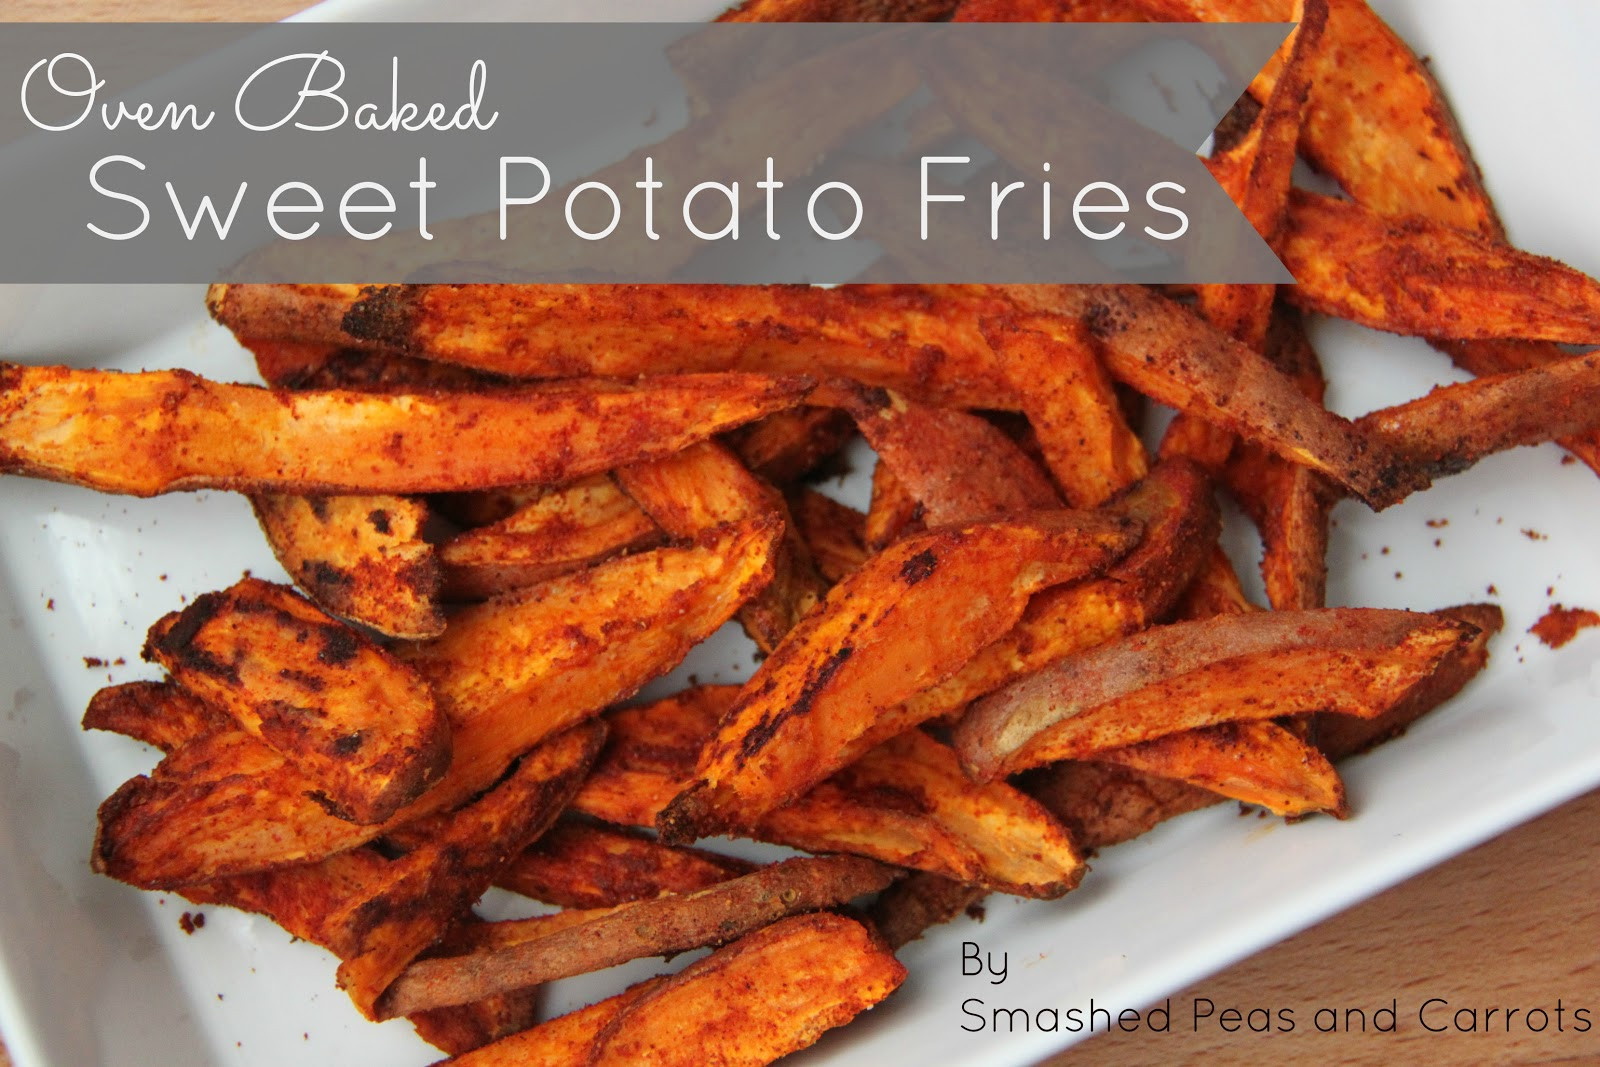 Sweet Potato Fries In Oven  RECIPE Oven Baked Sweet Potato Fries Smashed Peas & Carrots